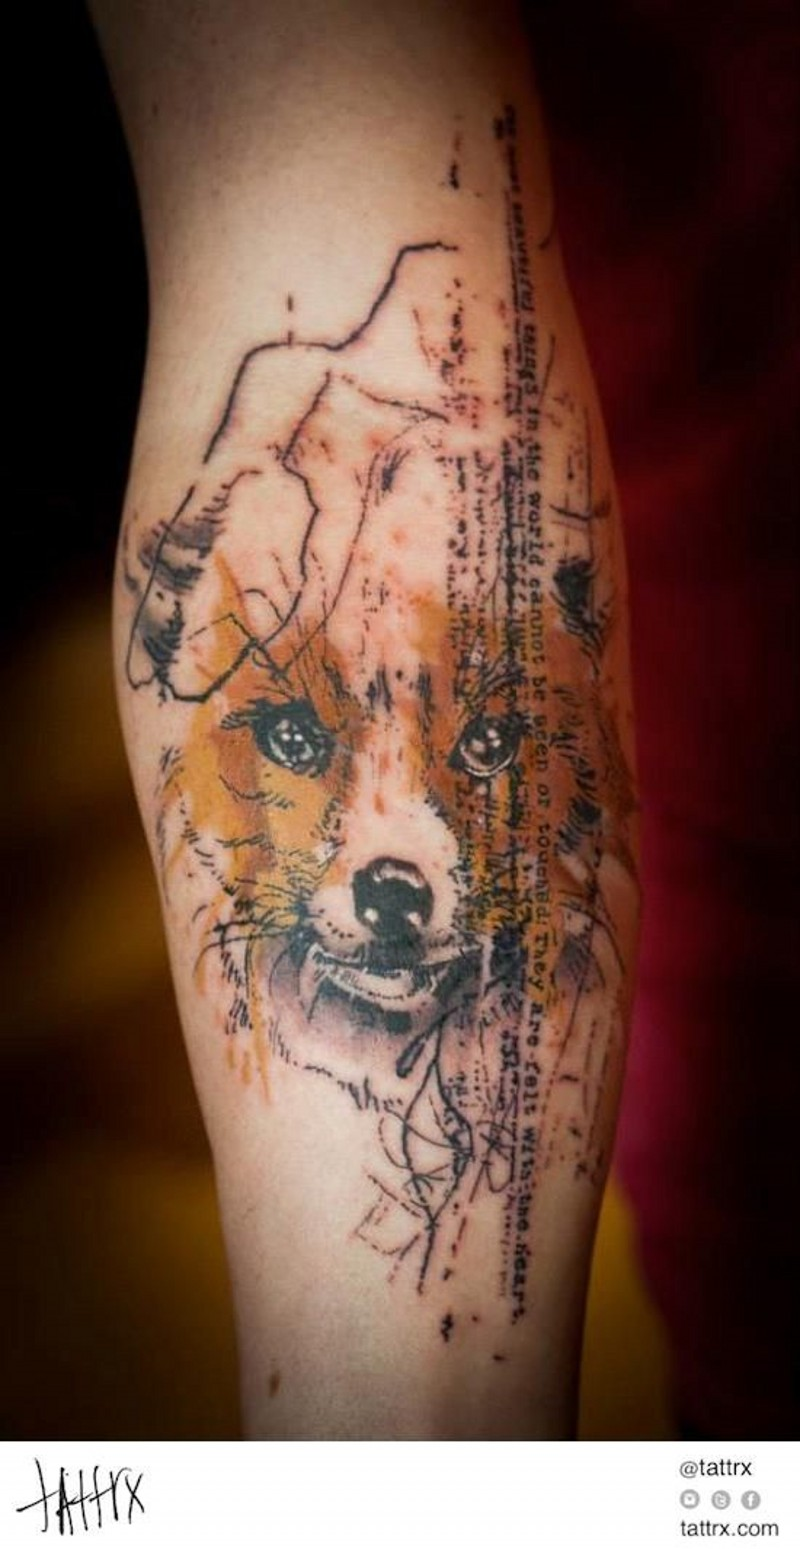 Nice painted and colored little fox with lettering tattoo on arm